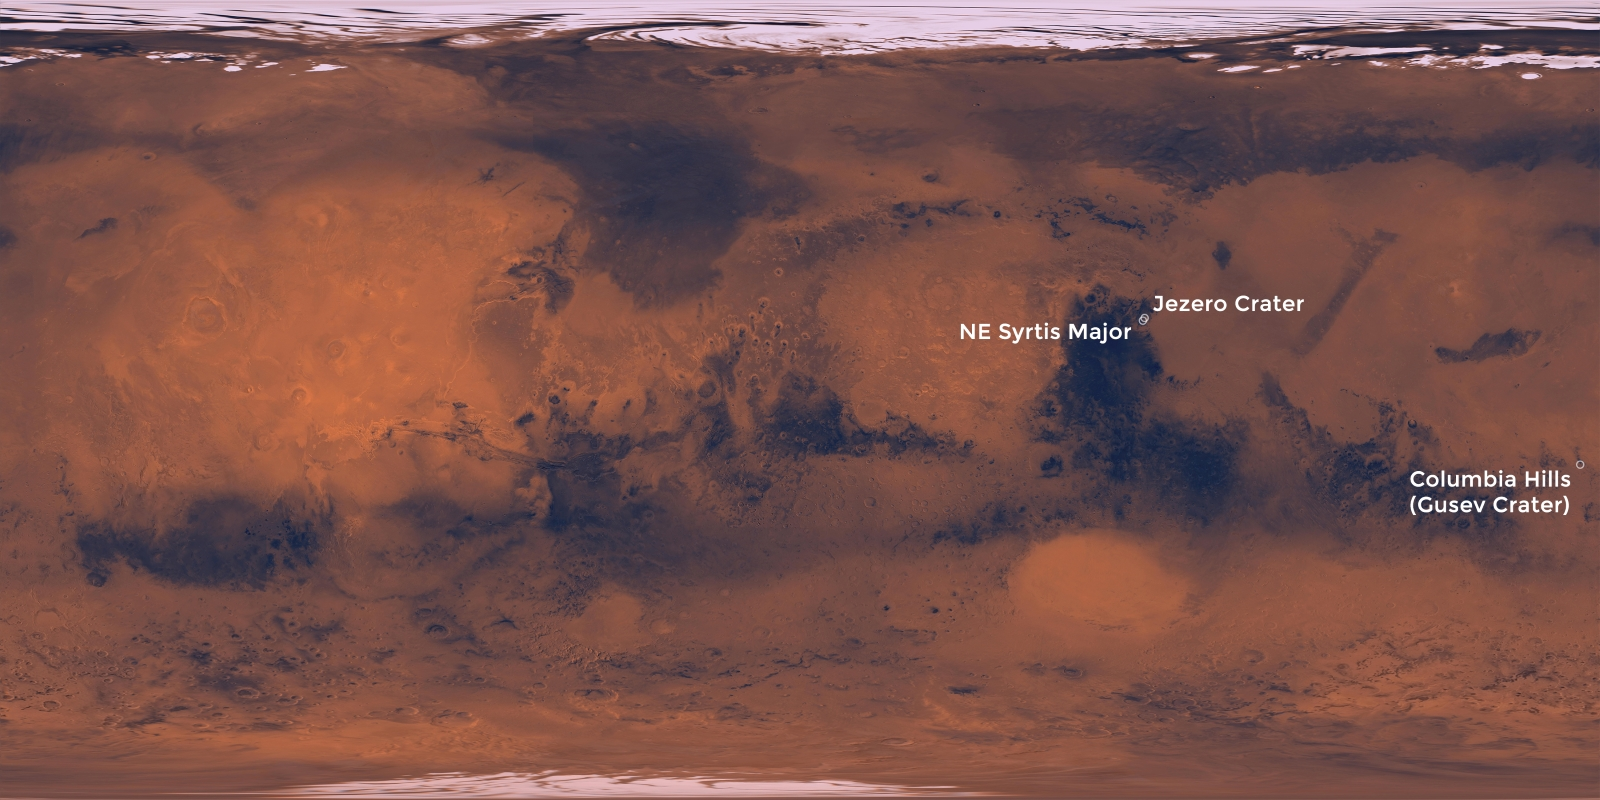 Three Landing Sites for Mars 2020